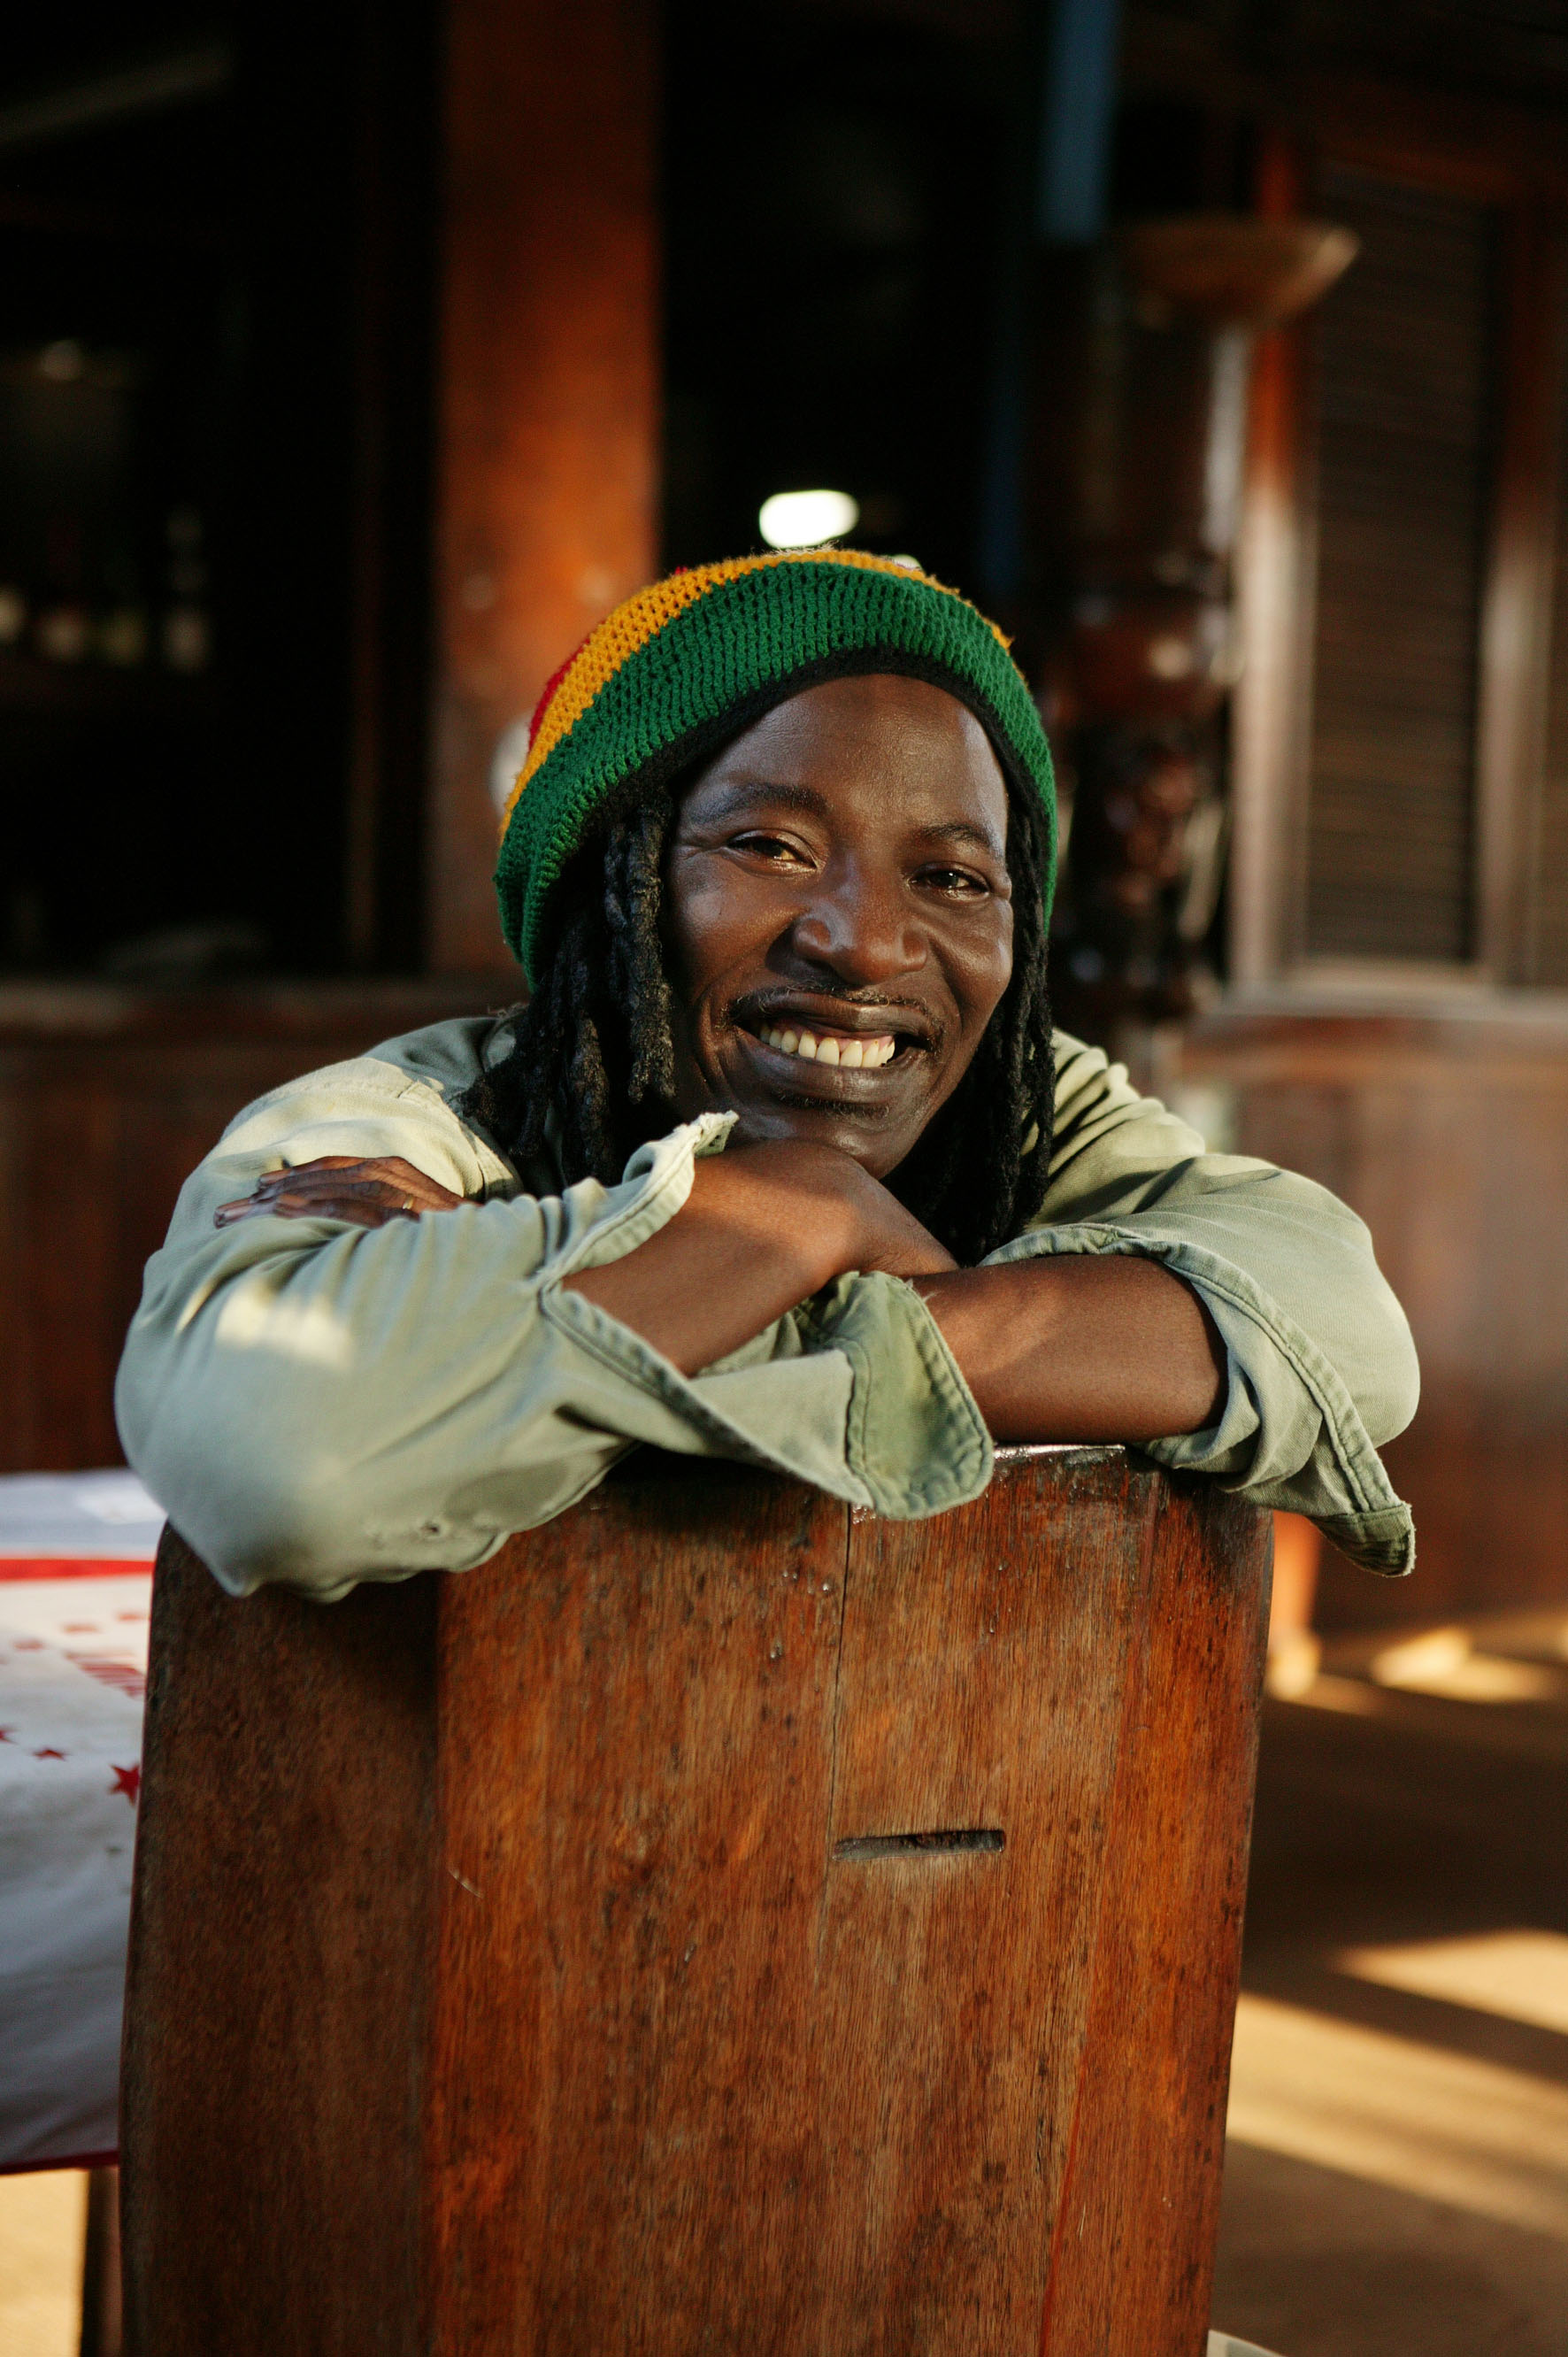 ALPHA BLONDY & THE SOLAR SYSTEM (Costa de Marfil)